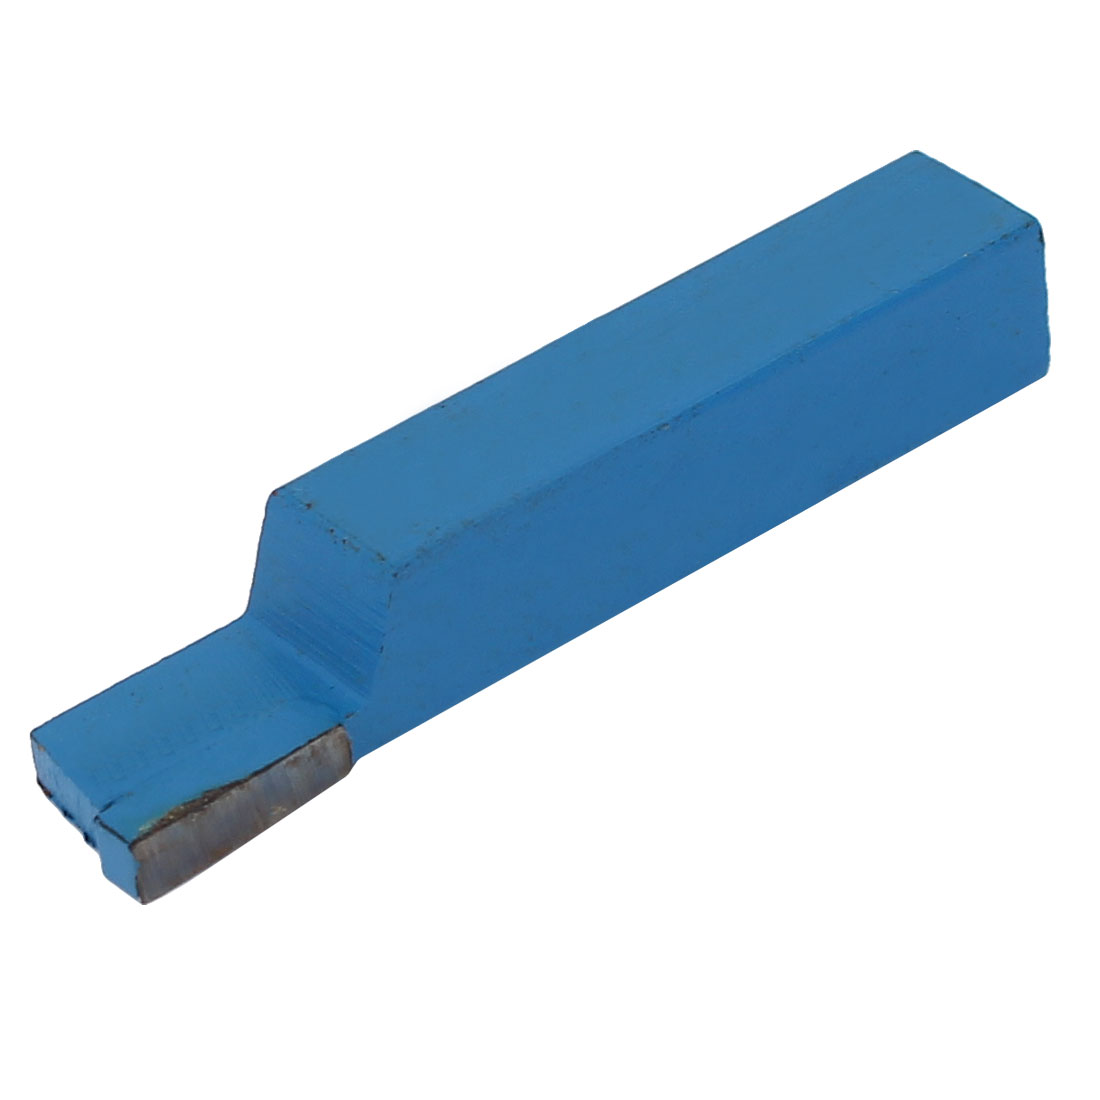 Blue Tungsten Carbide Turning Cutting Tool Holder for CNC Lathe